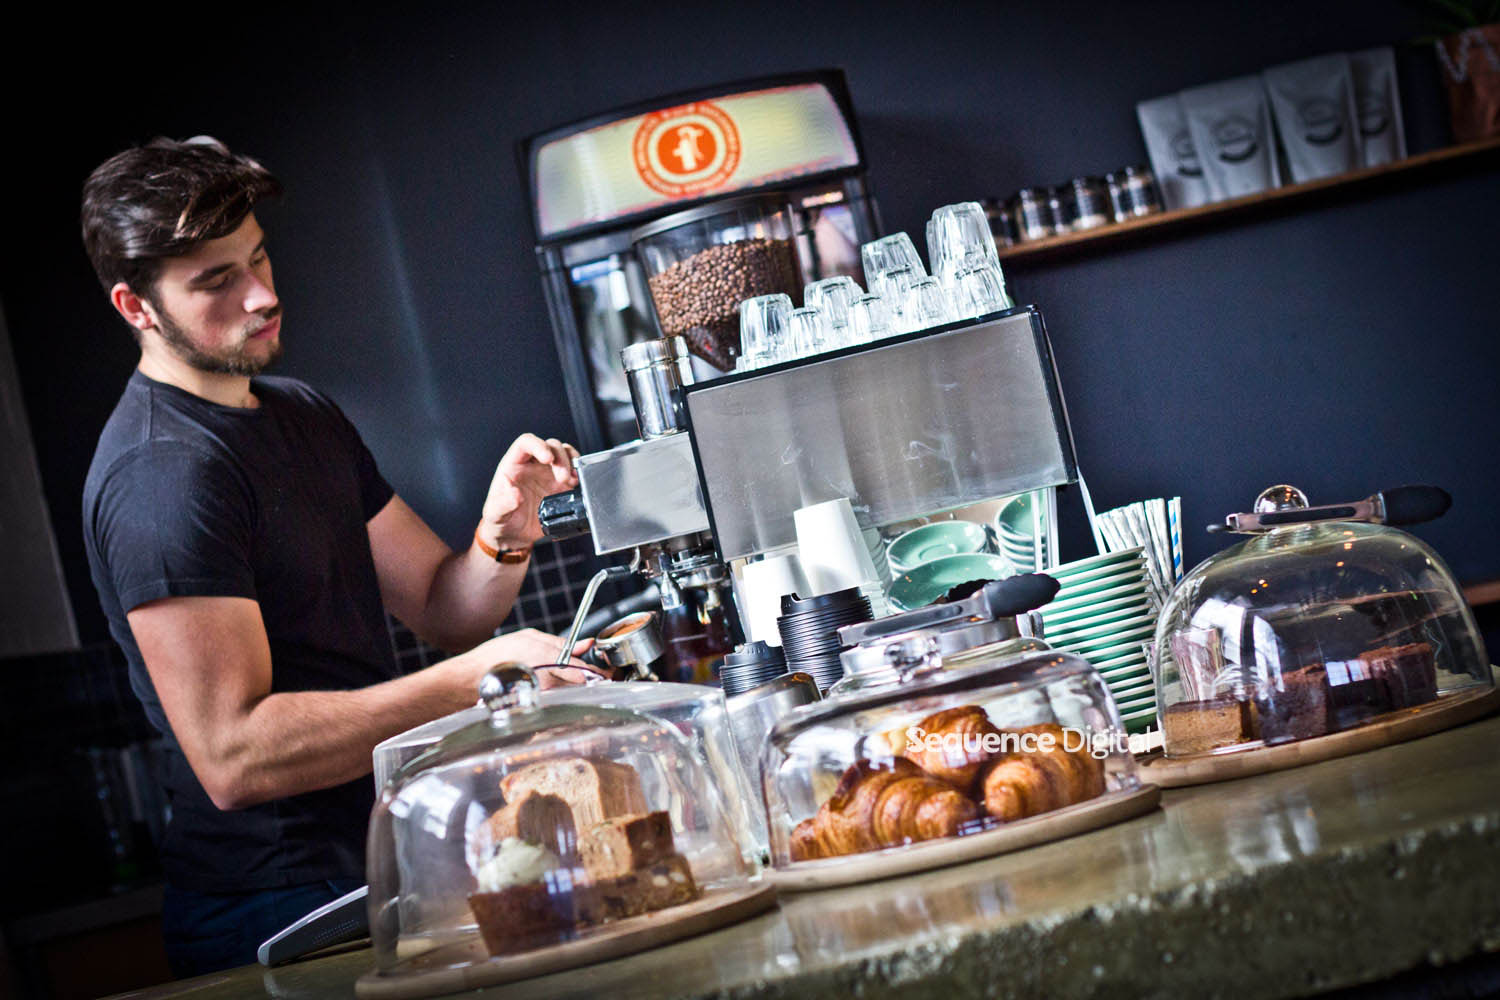 Dirty Rascal Cafe Geelong - Making Coffee